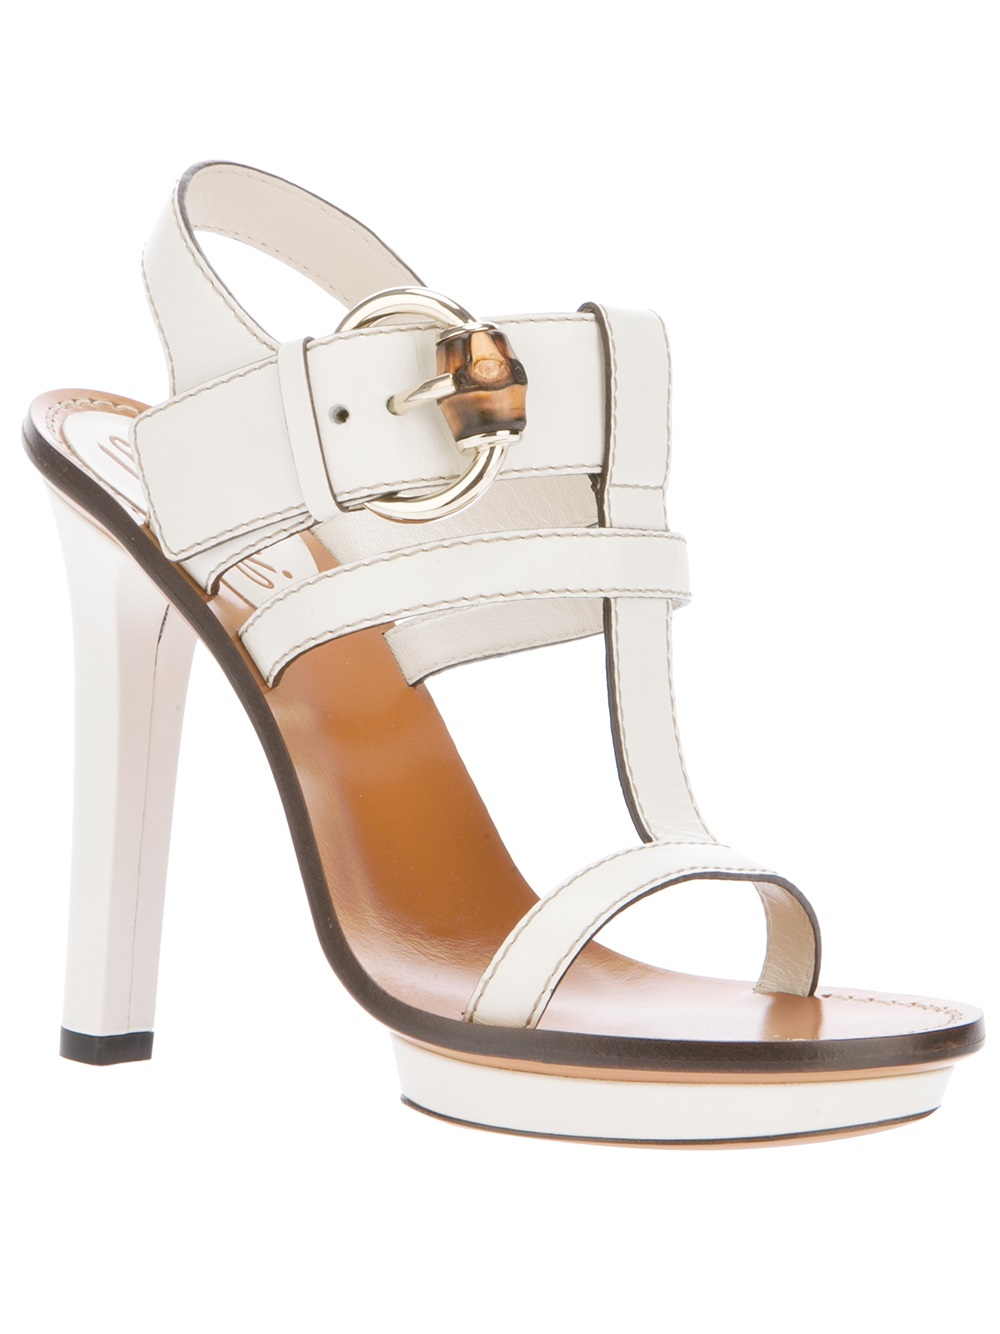 b326f25a5ef75 Lyst - Gucci Strappy Heeled Sandal in White